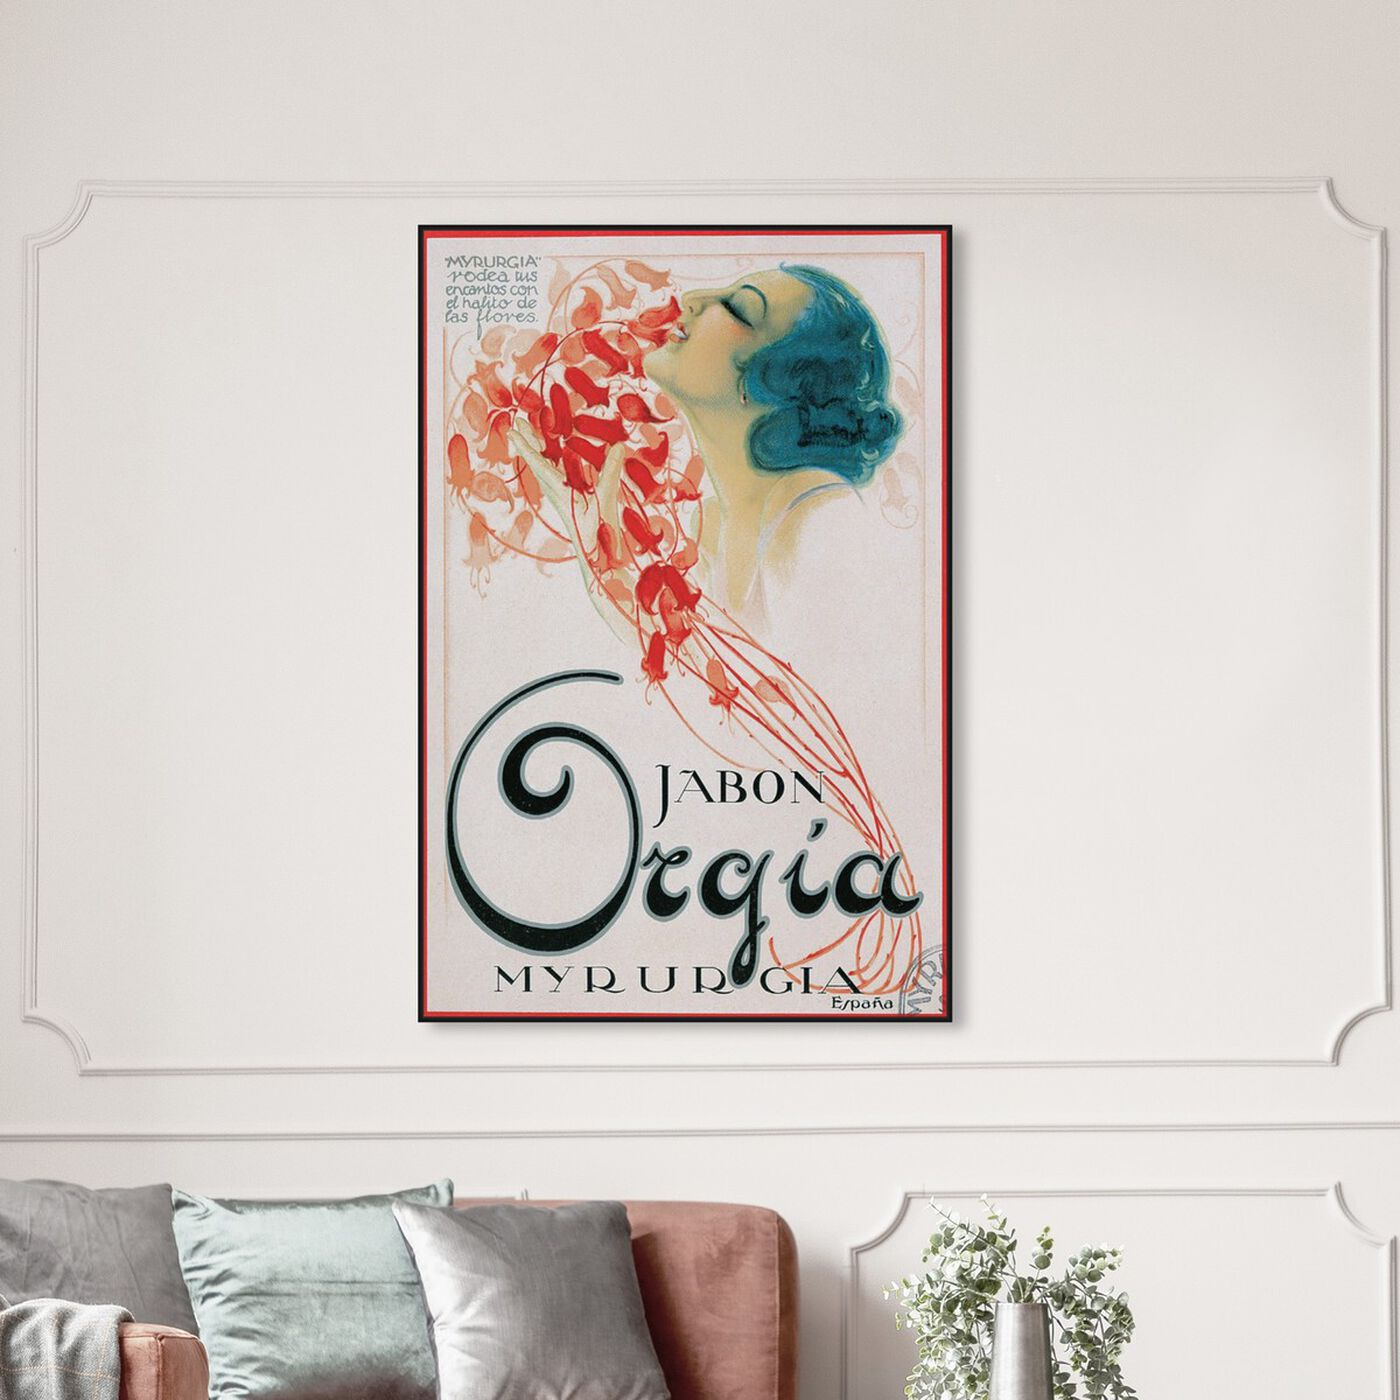 Hanging view of Orgia Vintage Soap Ad featuring advertising and posters art.